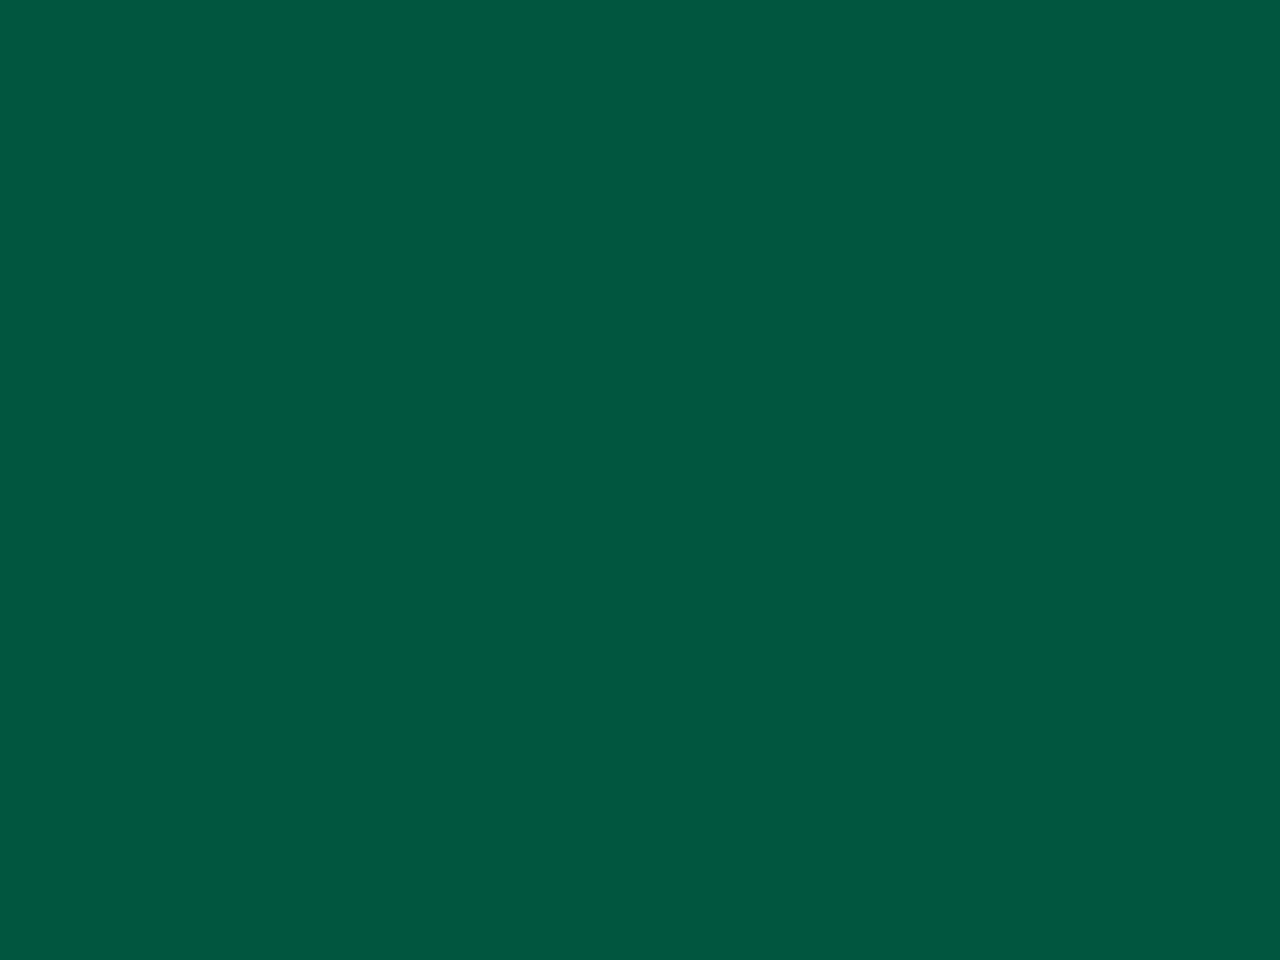 1280x960 Sacramento State Green Solid Color Background